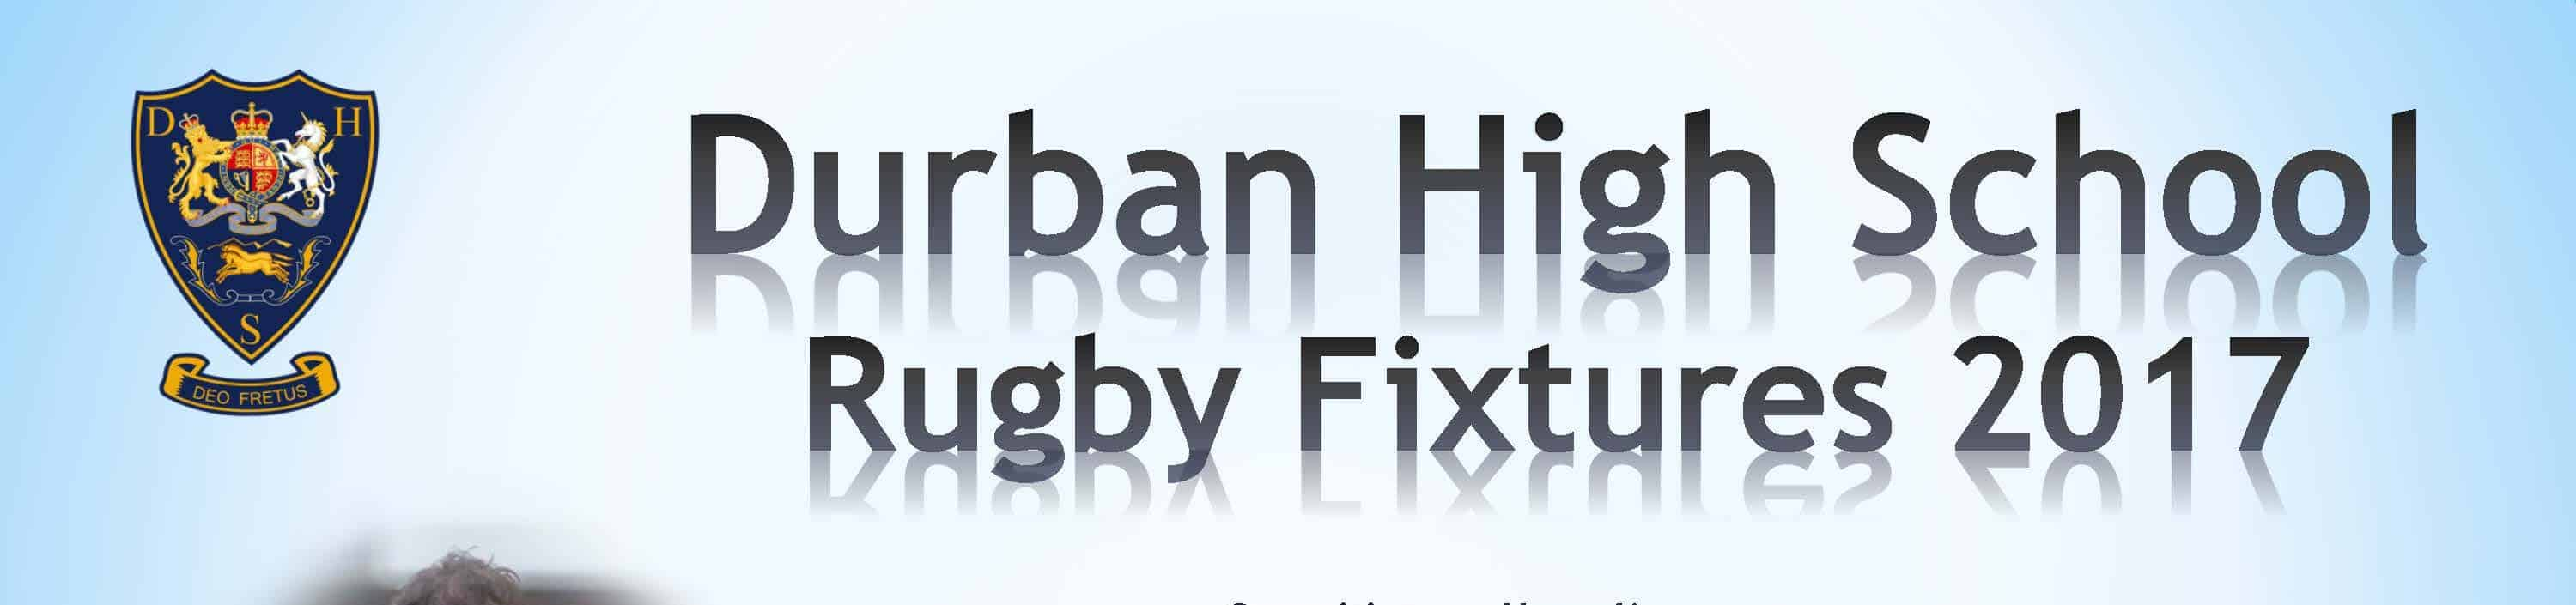 DHS Rugby Fixtures 2017